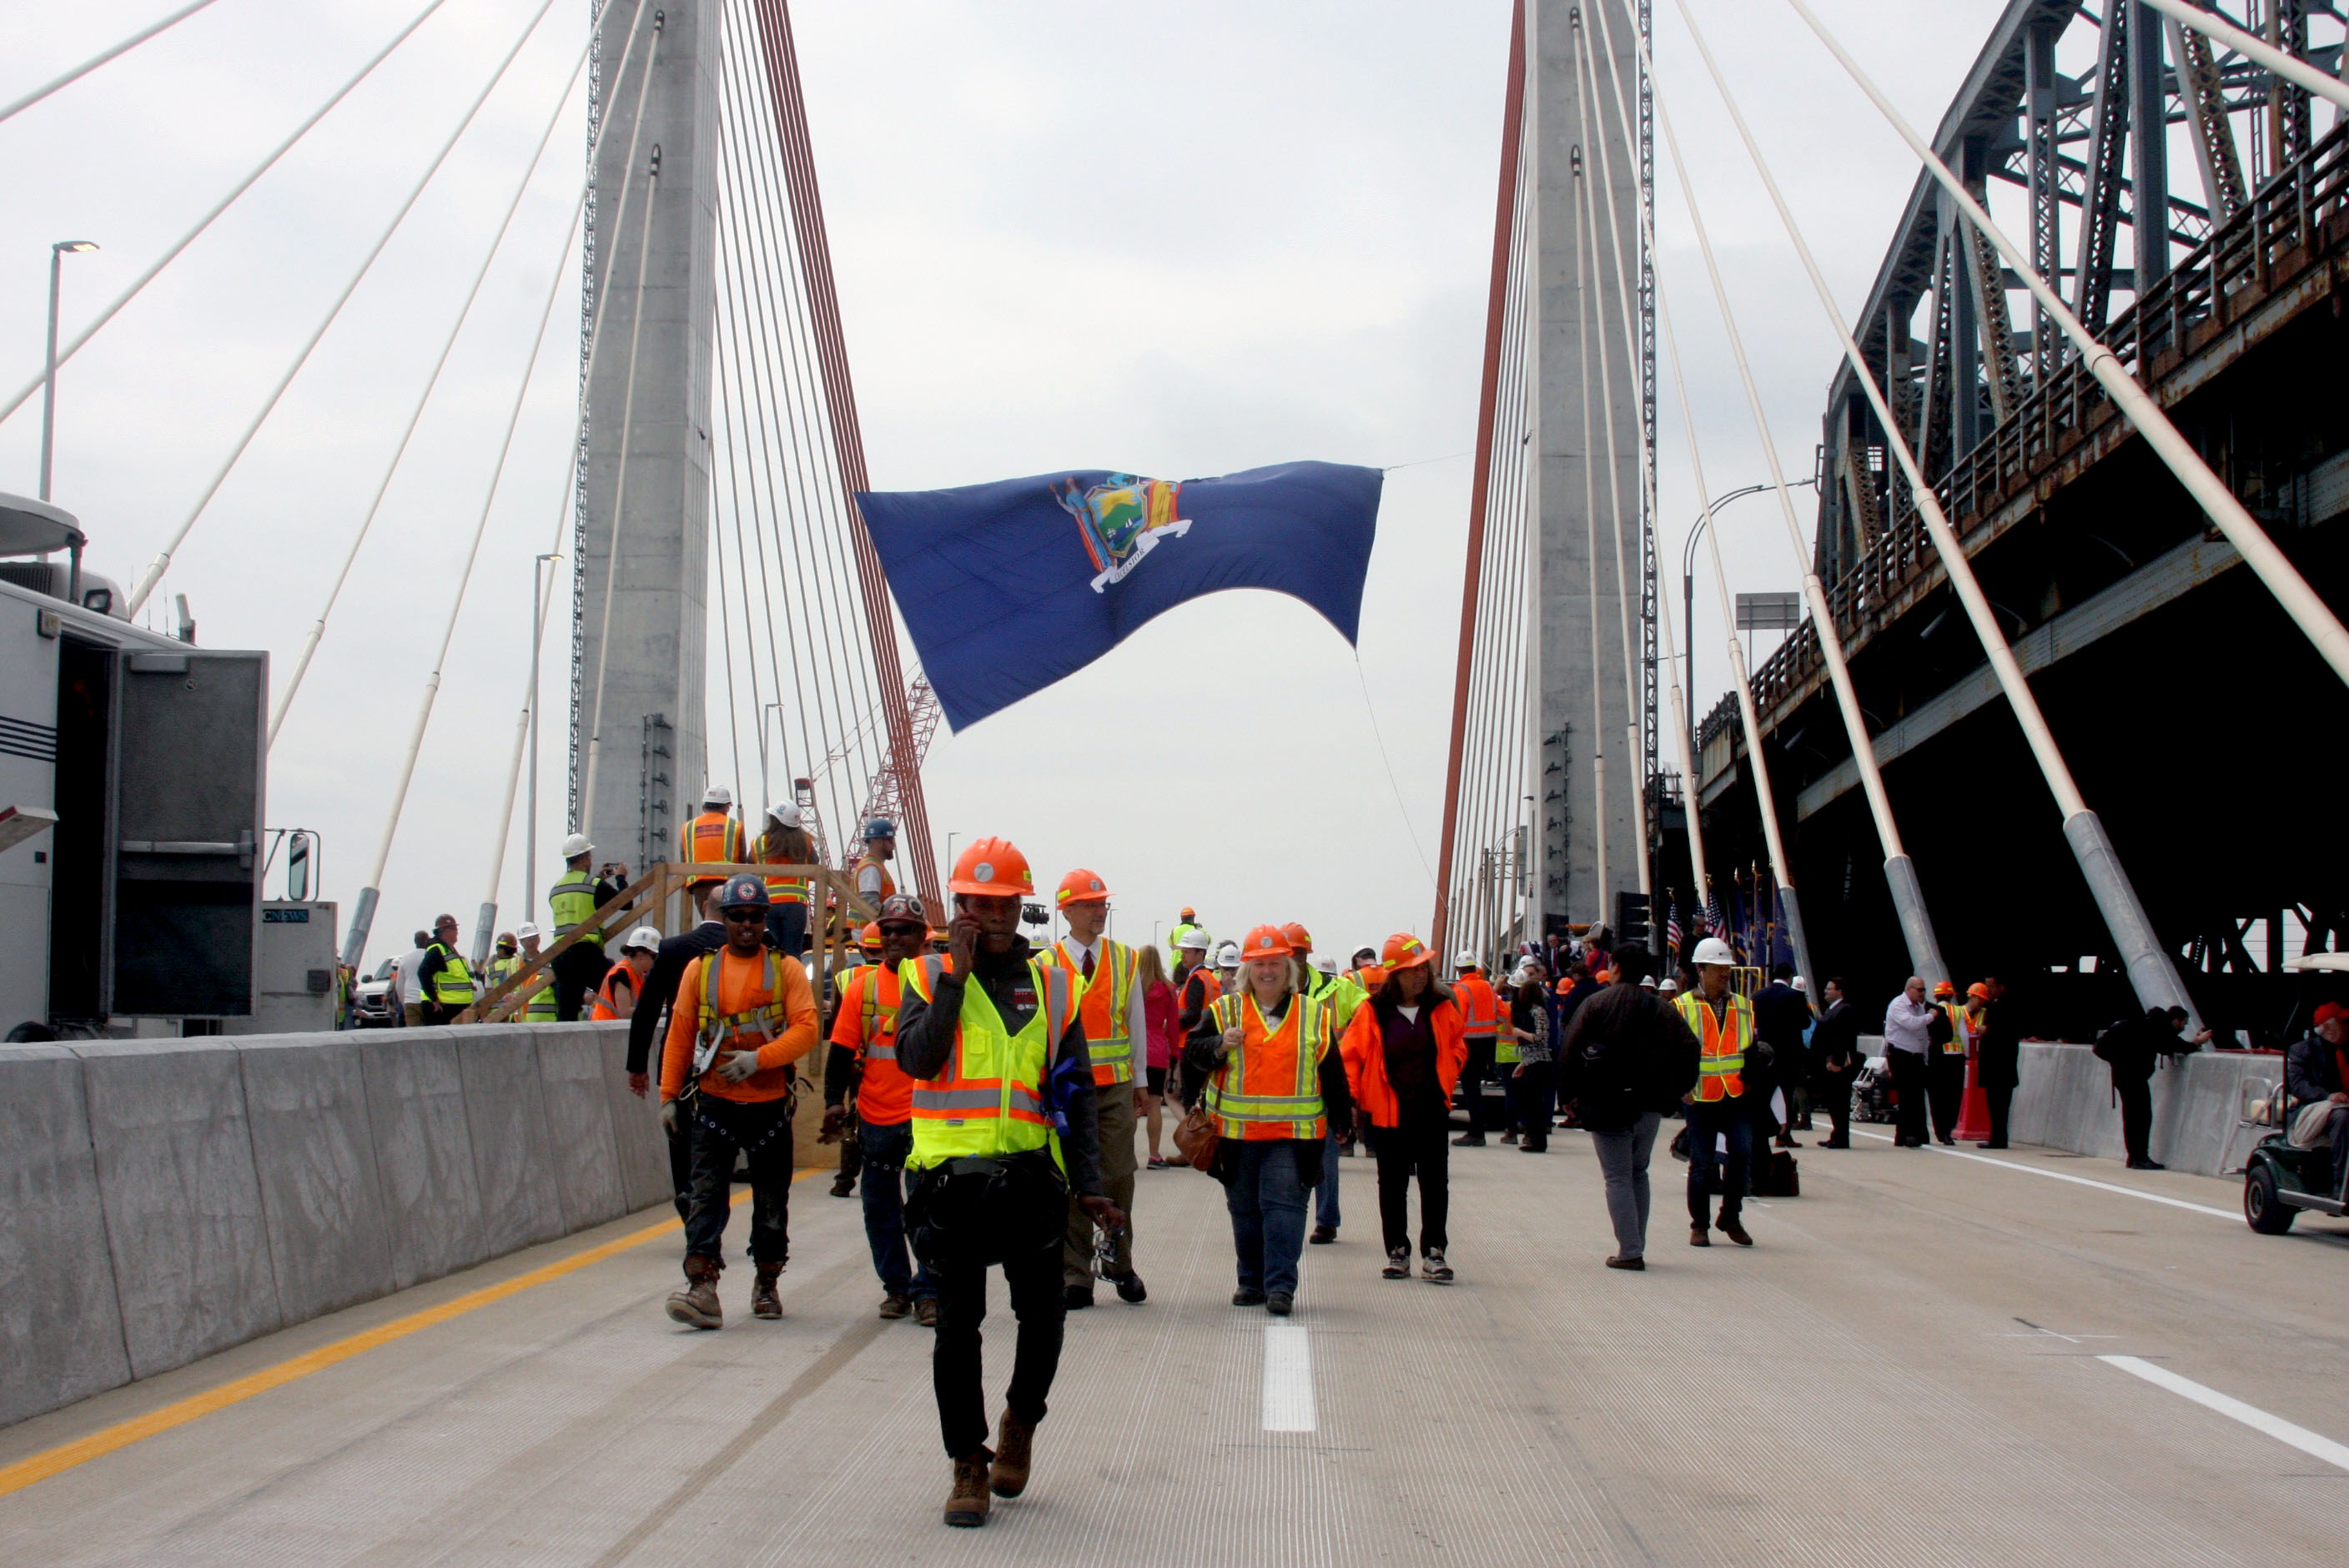 10 Fun Facts About the New Kosciuszko Bridge Between Brooklyn and Queens